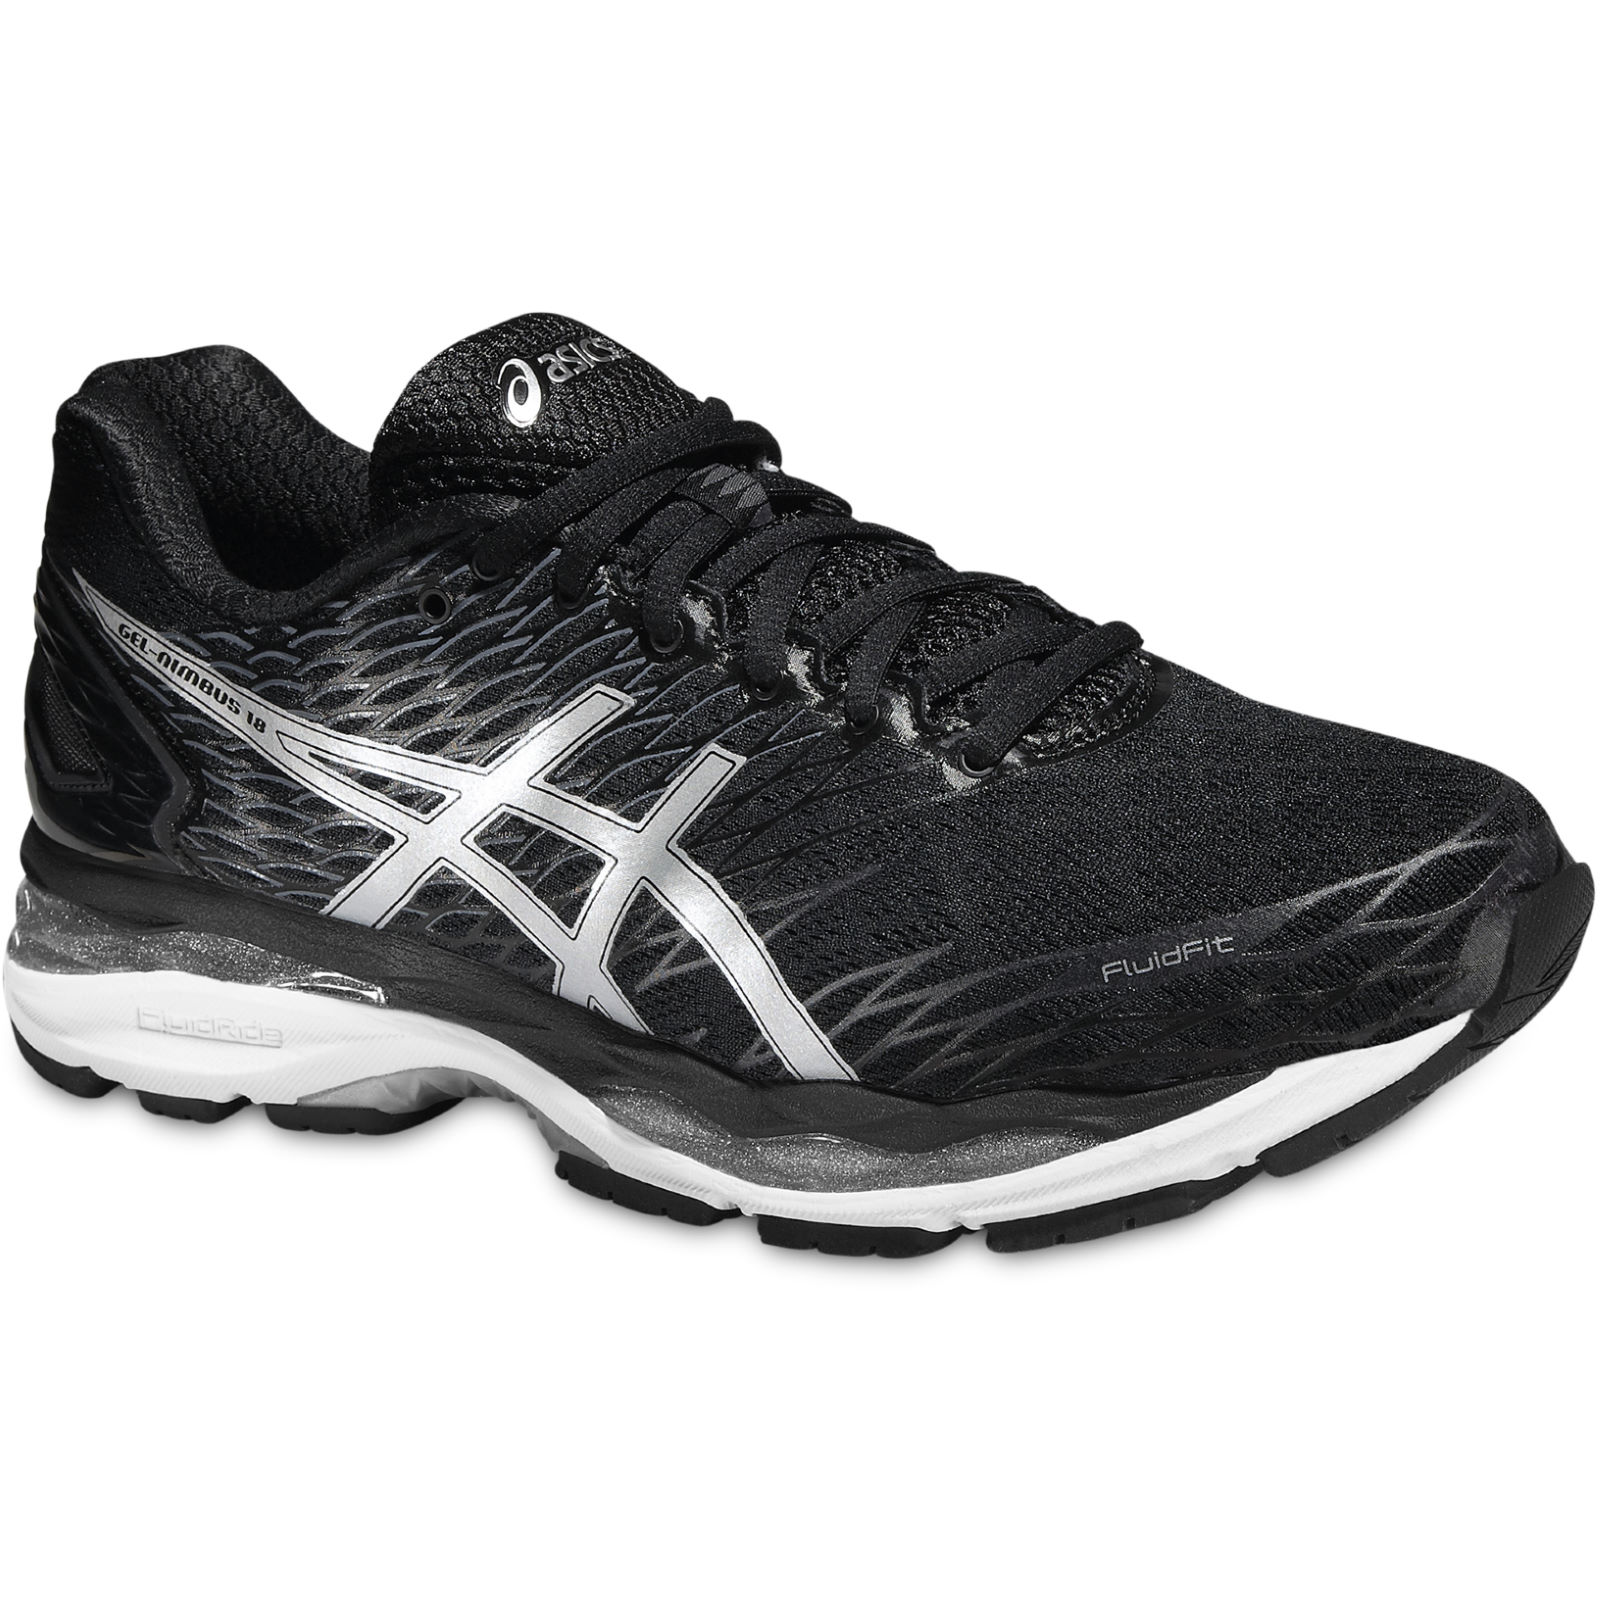 chaussures de running amorties asics gel nimbus 18 shoes black aw16 wiggle france. Black Bedroom Furniture Sets. Home Design Ideas